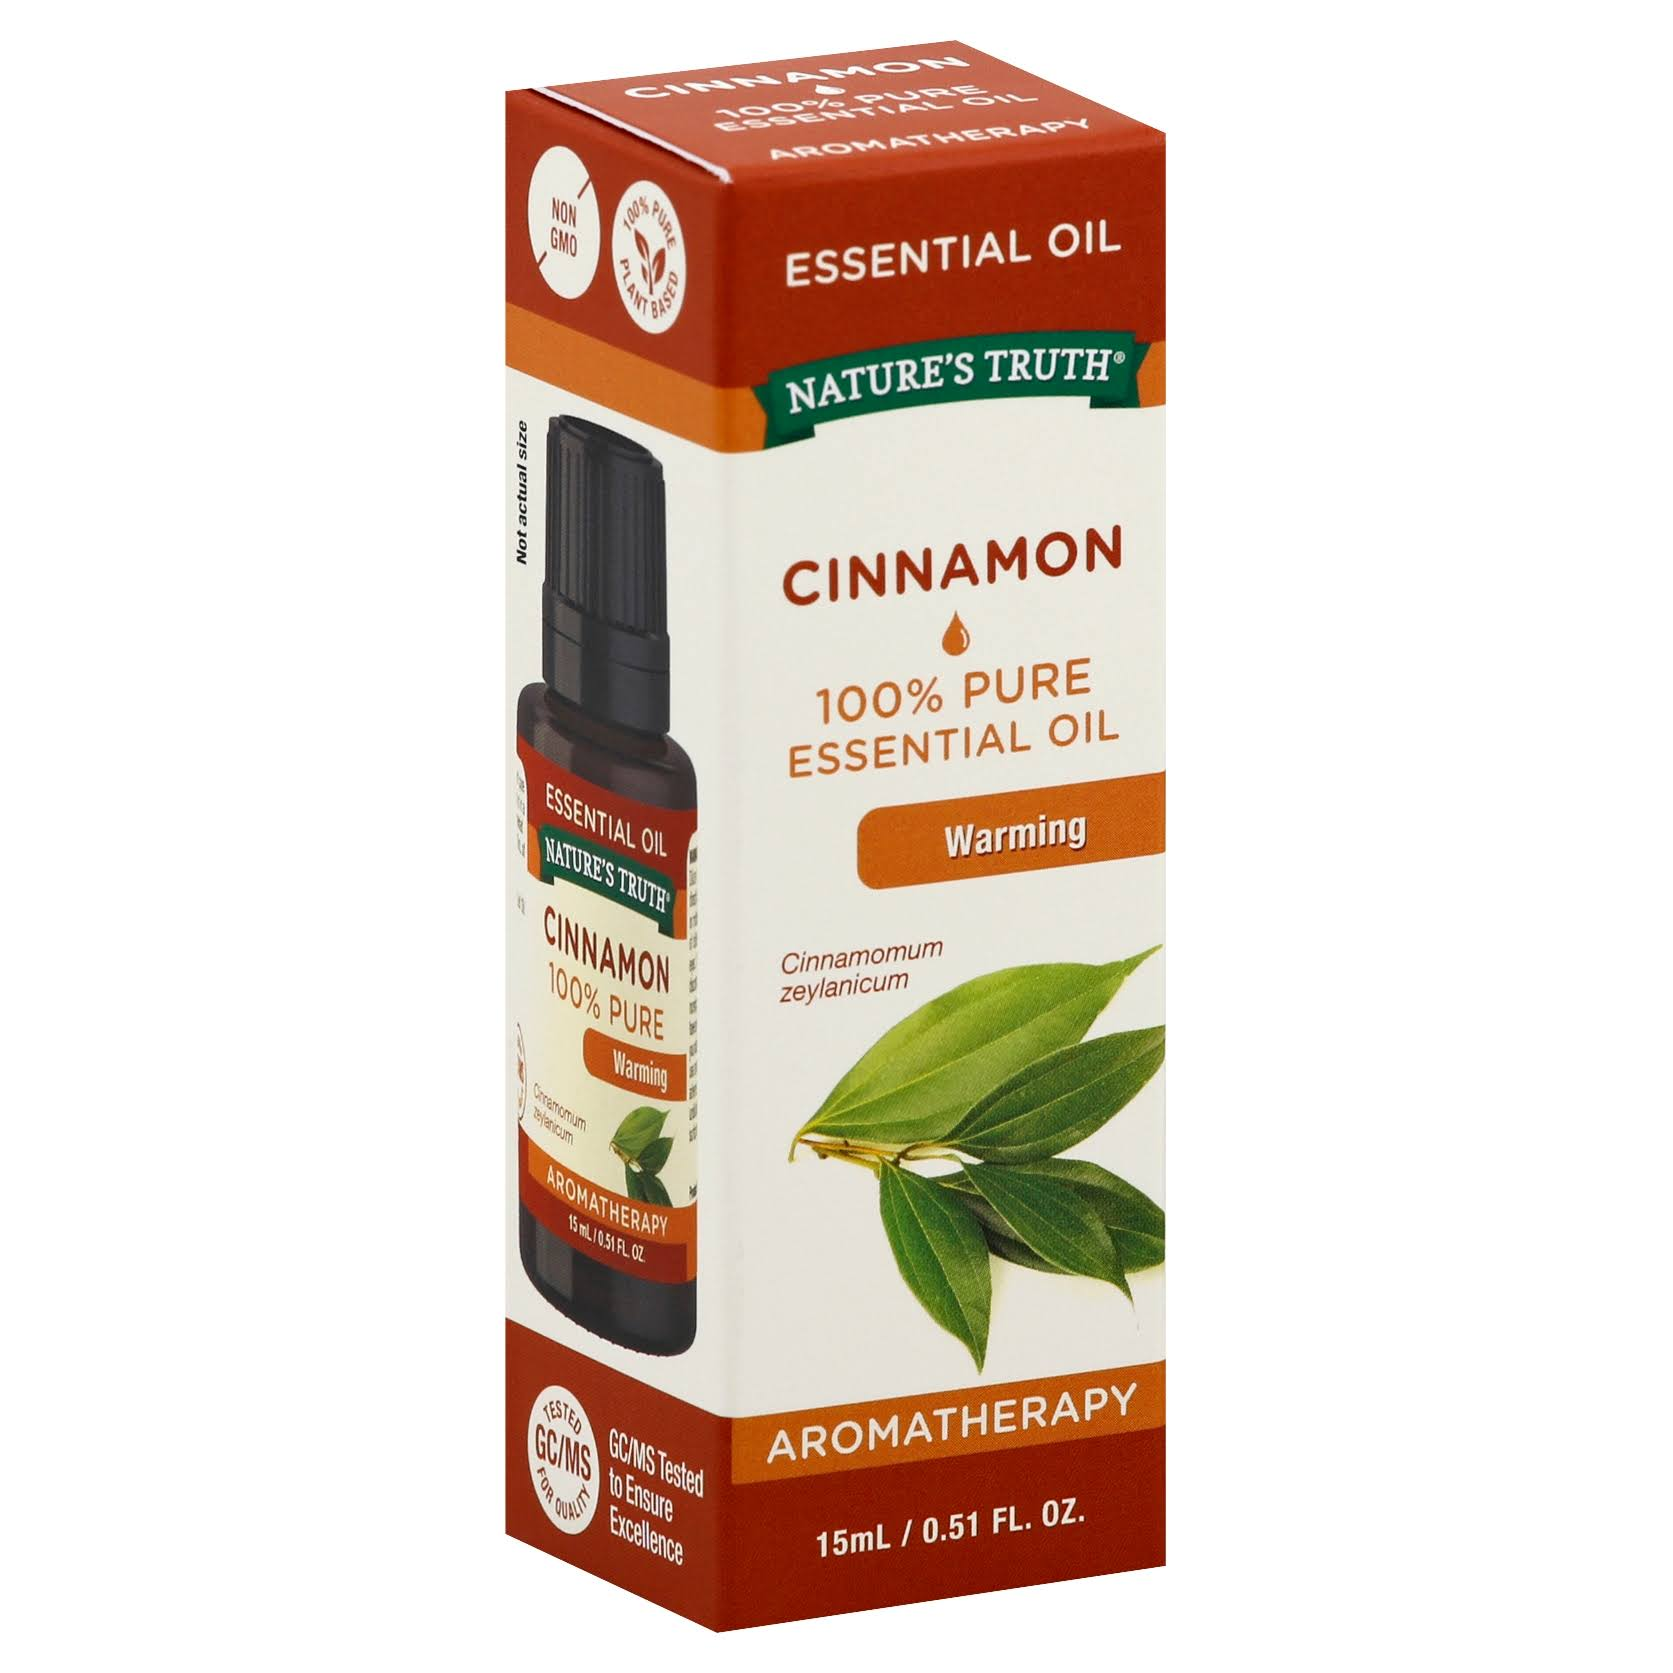 Nature's Truth Aromatherapy Essential Oil - Cinnamon, 15ml